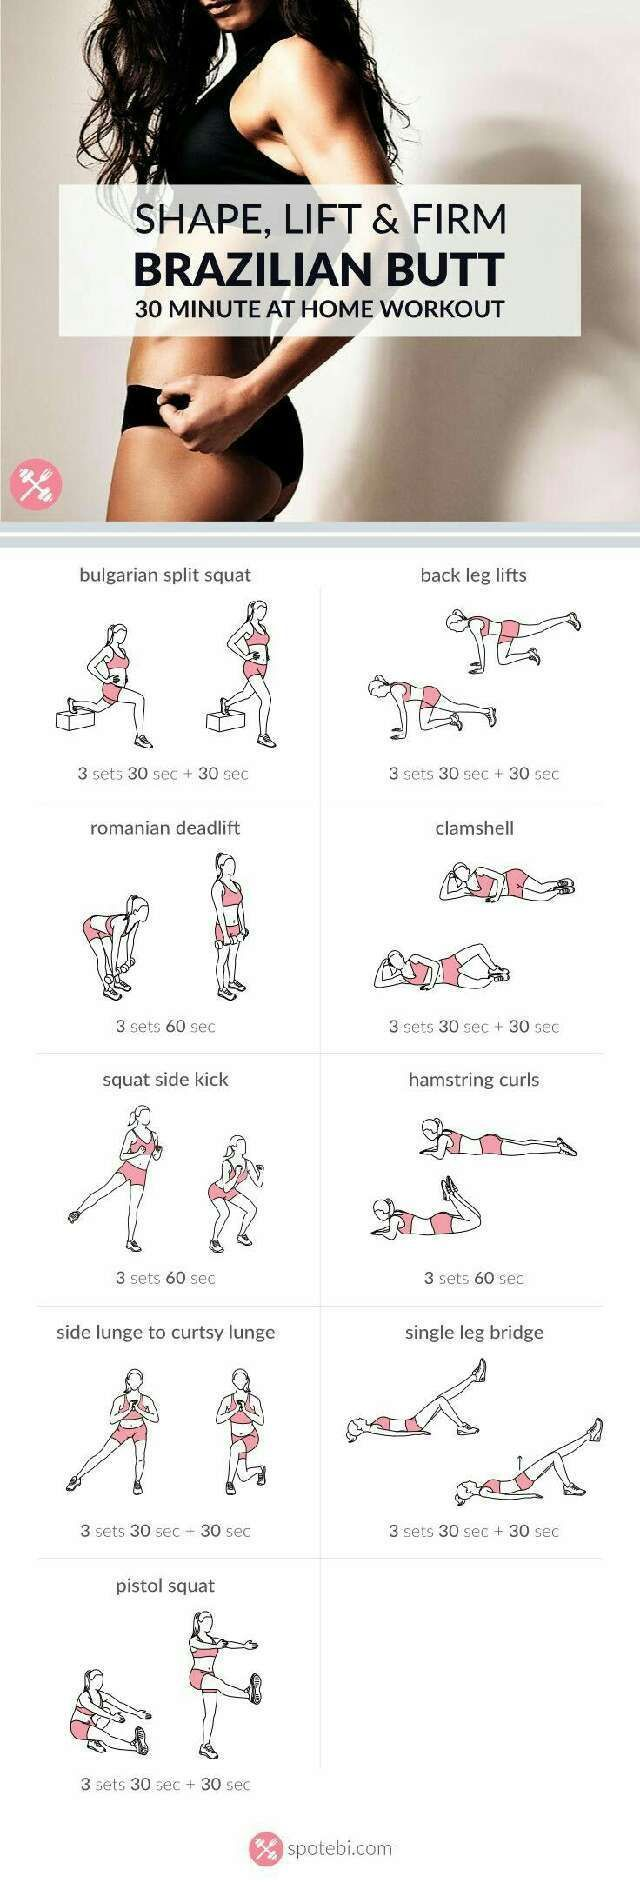 Fat Fast Shrinking Signal Diet-Recipes Wont six-pack Abs, gain muscle or weight loss, these workout plan is great for women. with FREE WEEKENDS and No-Gym or equipment ! Do This One Unusual 10-Minute Trick Before Work To Melt Away 15+ Pounds of Belly Fat